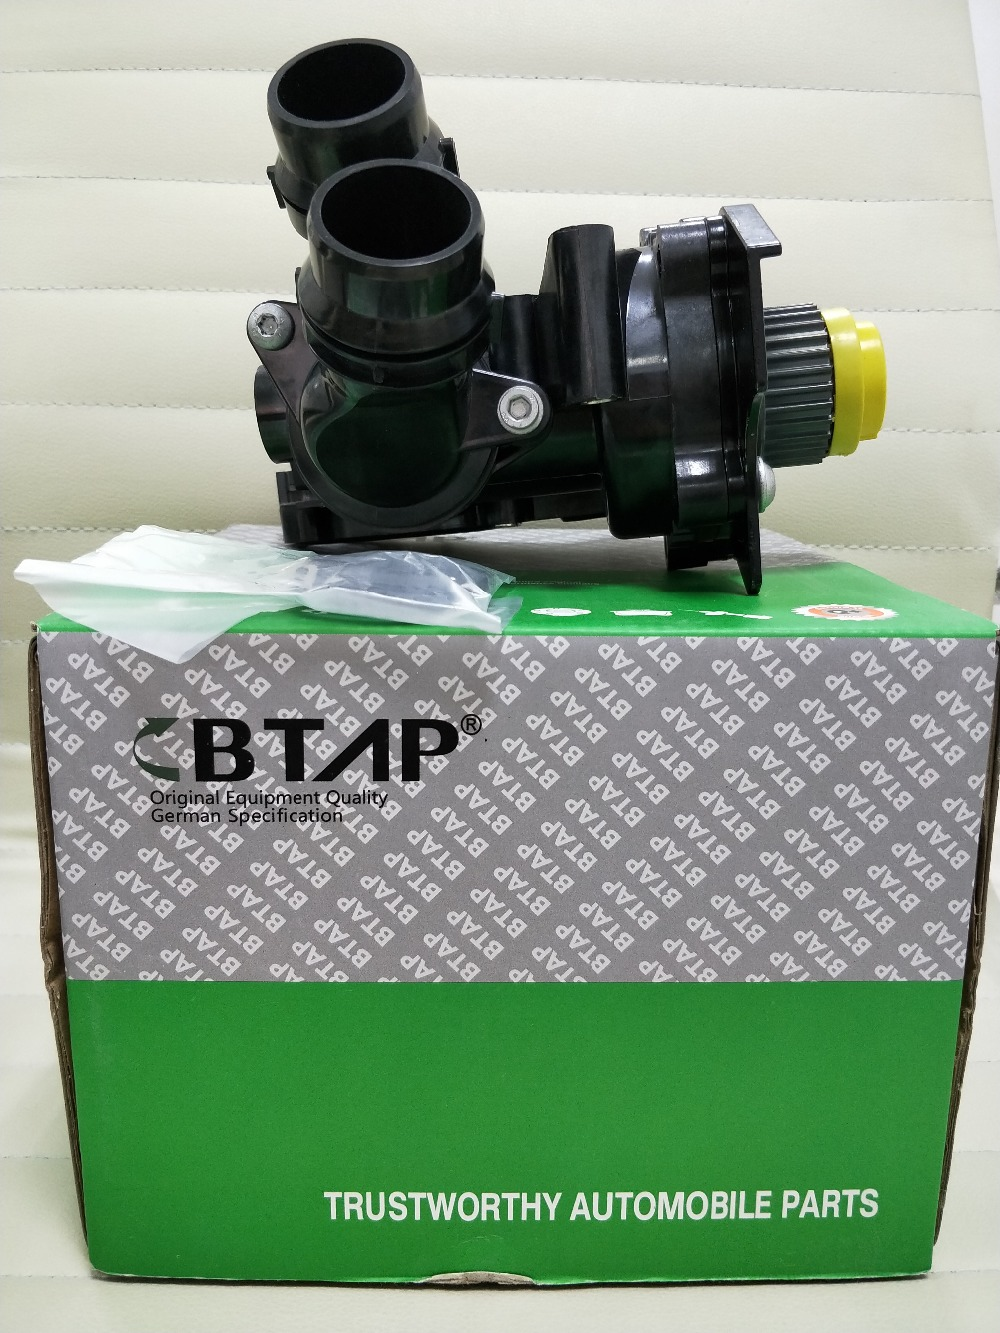 BTAP Engine Water Pump Assembly For VW Passat Jetta GLI Golf GTI MK6 EOS Tiguan AUDI 2.0T 06H121026B 06H 121 026 B/F 06H121026 купить